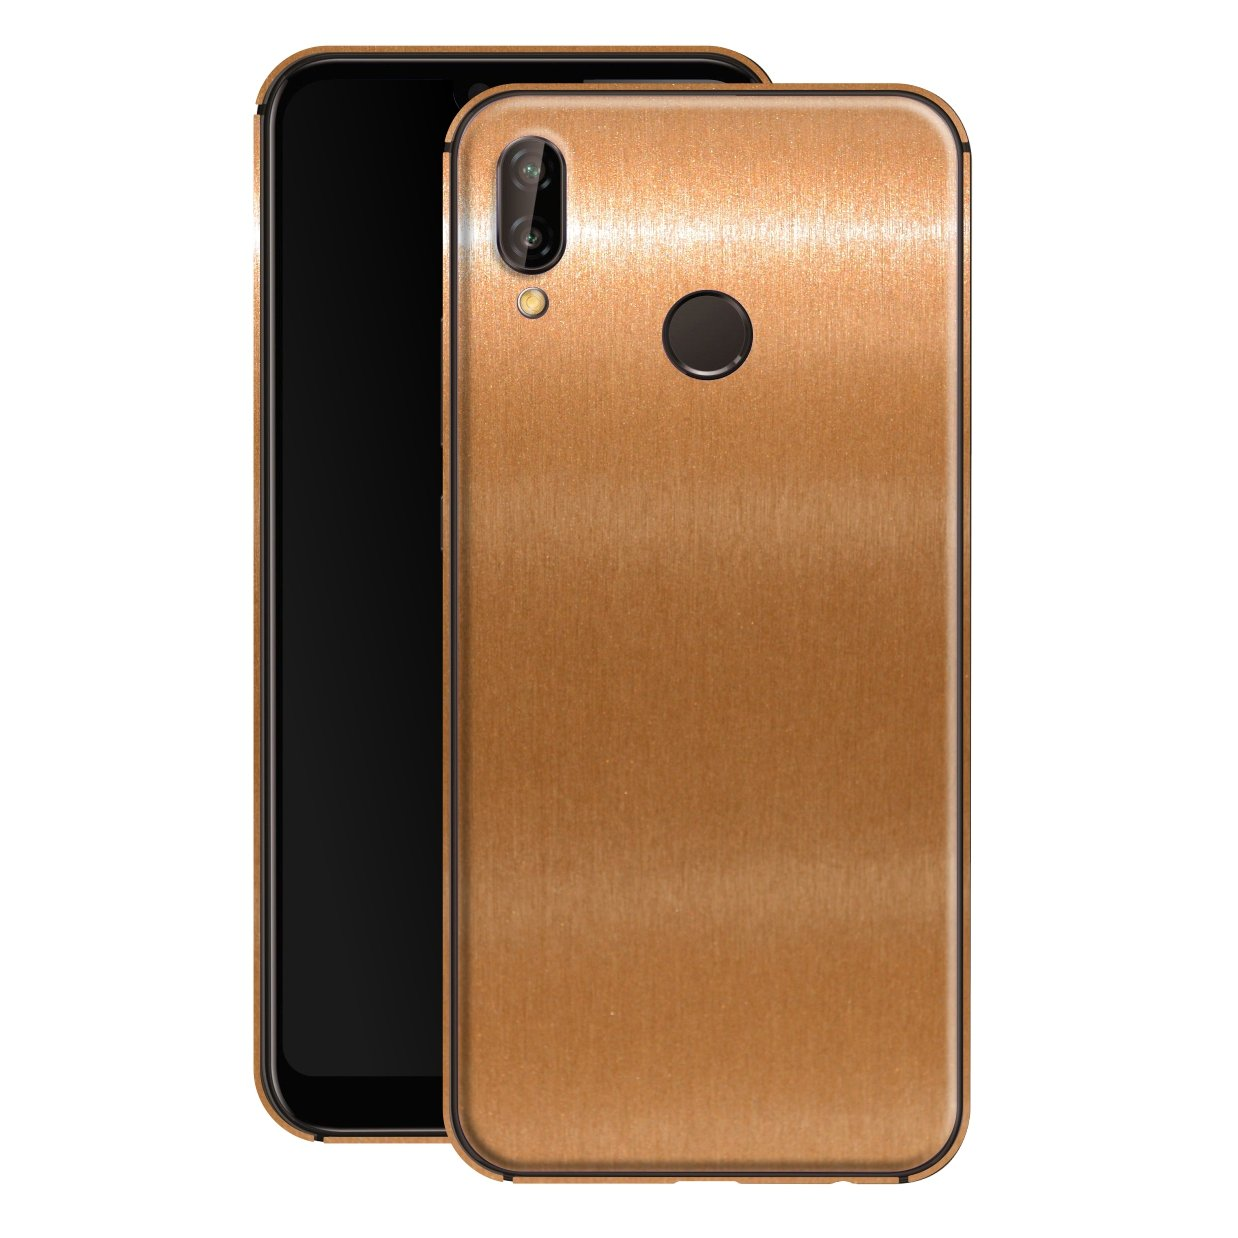 Huawei P20 LITE Brushed Copper Metallic Metal Skin, Decal, Wrap, Protector, Cover by EasySkinz | EasySkinz.com